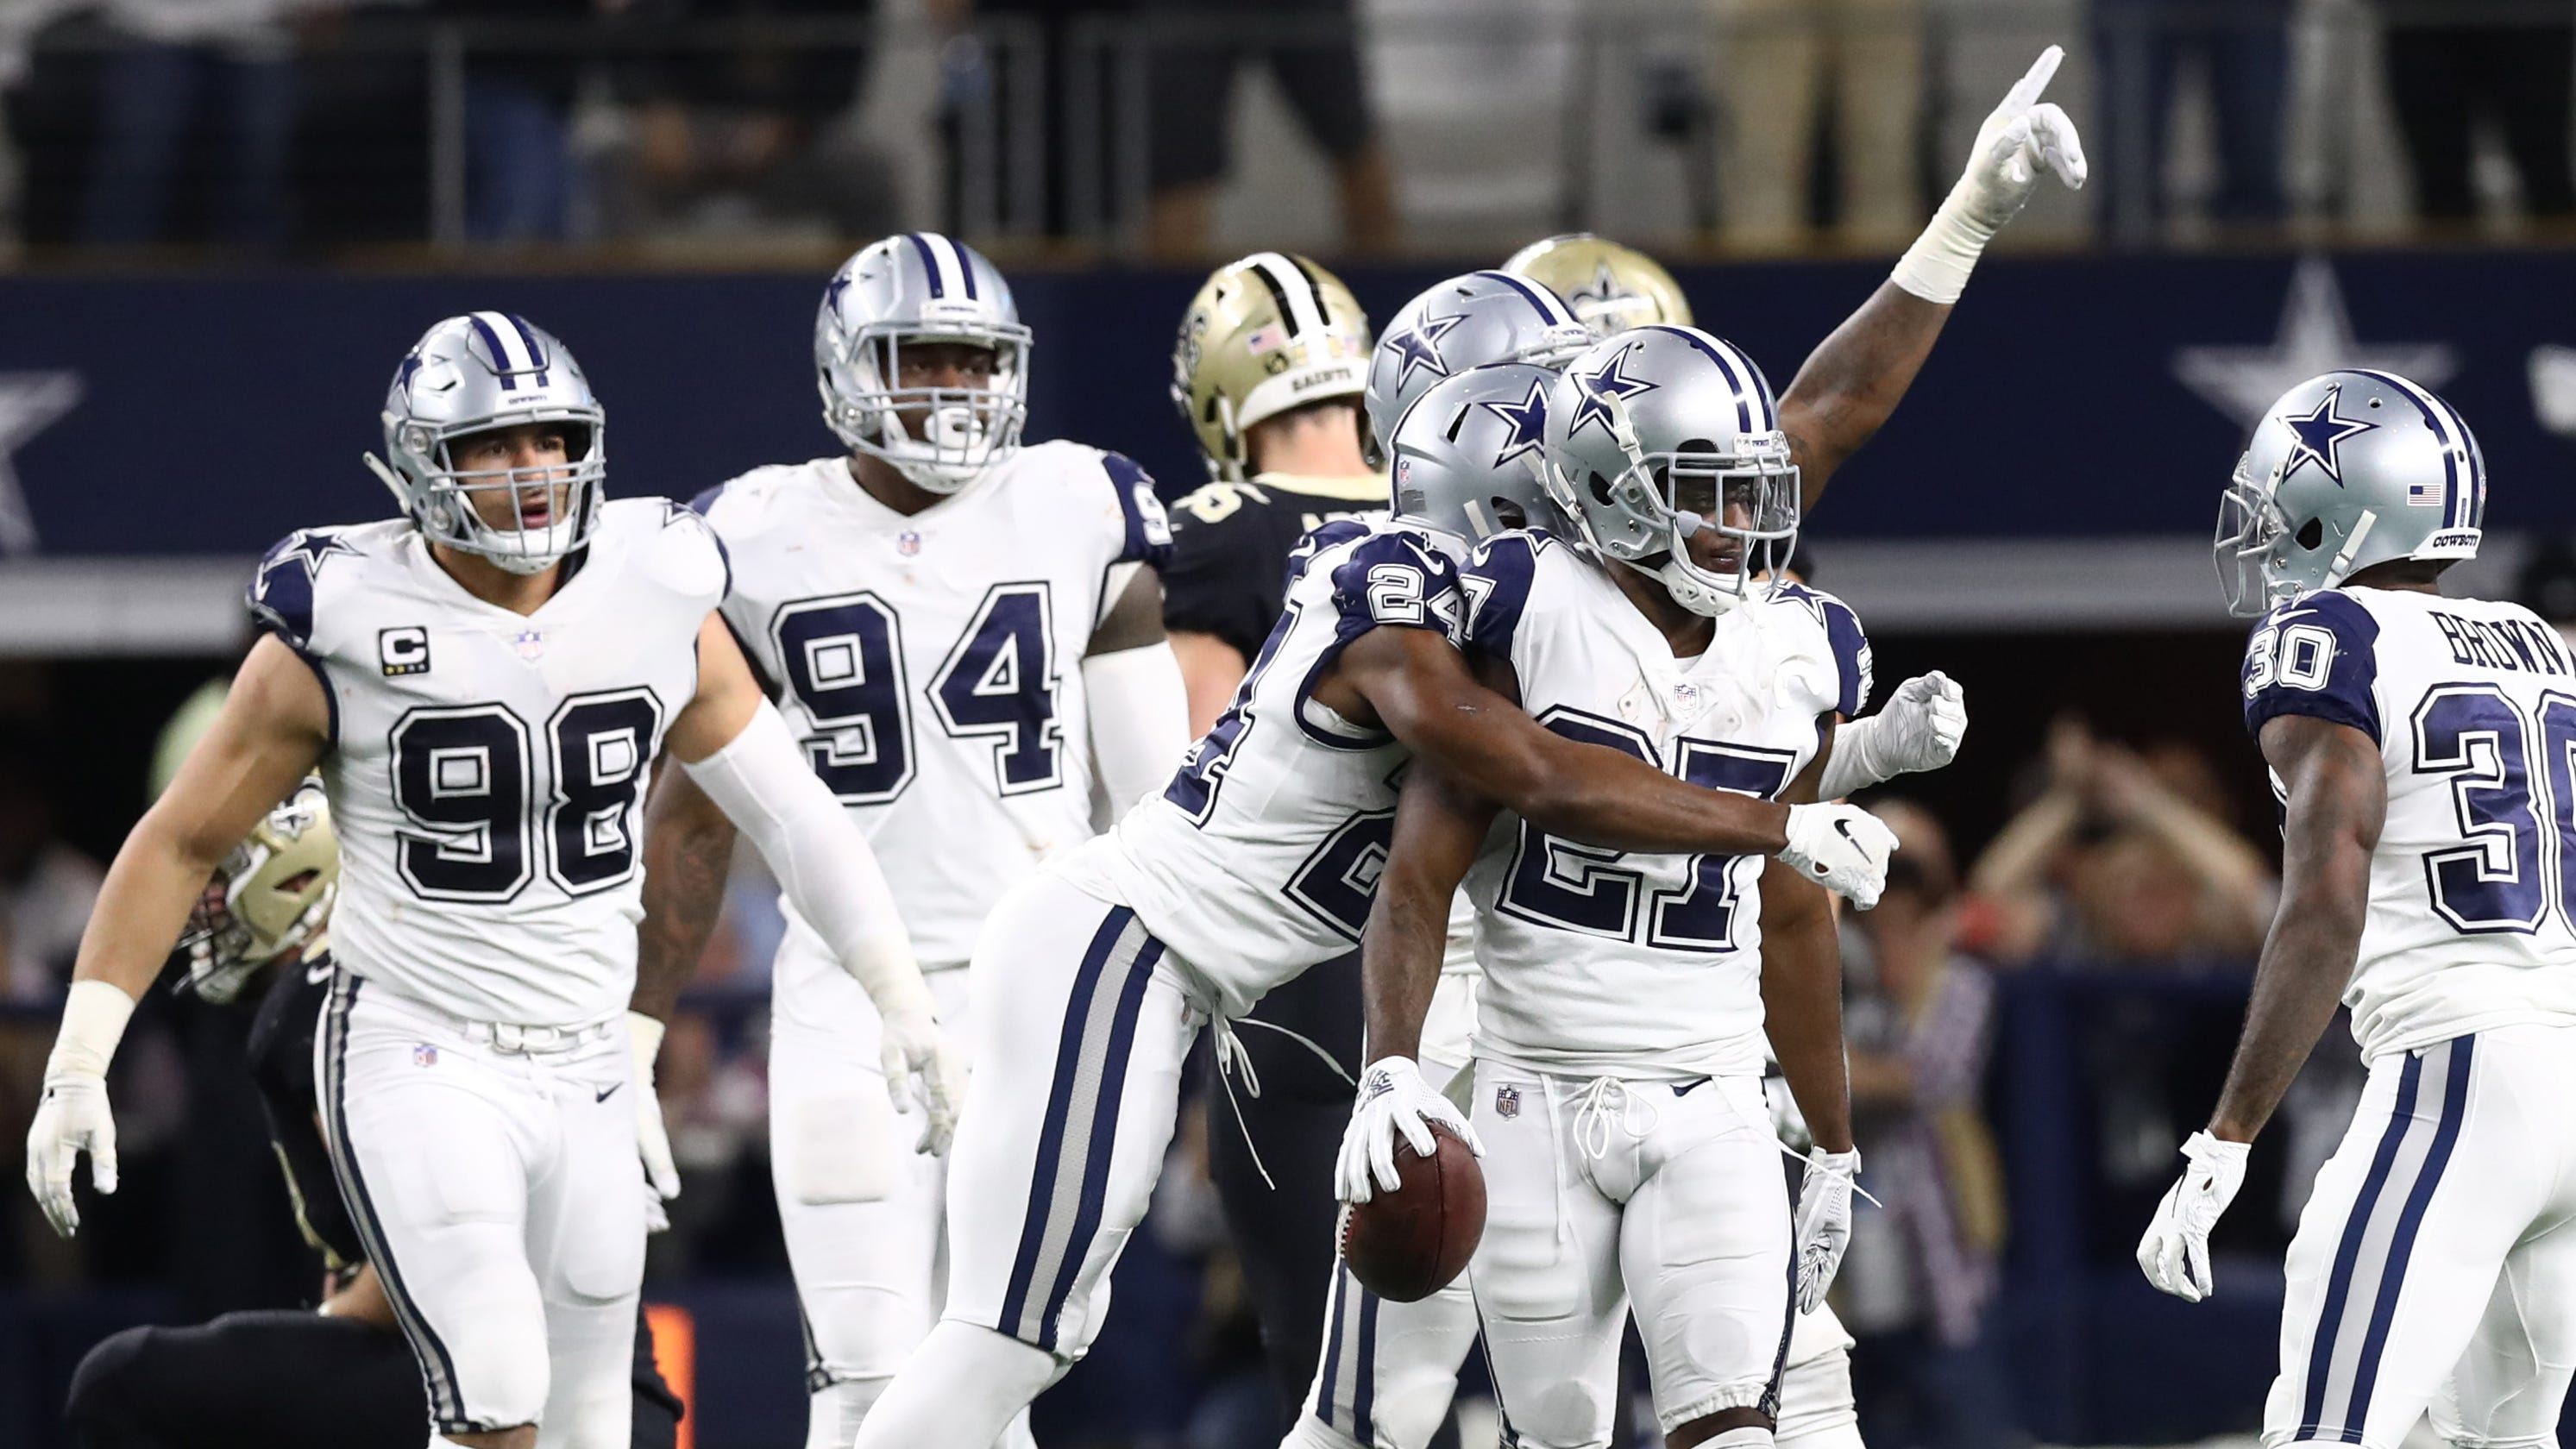 a7717742a Dallas Cowboys 'will never be the same' after New Orleans Saints upset